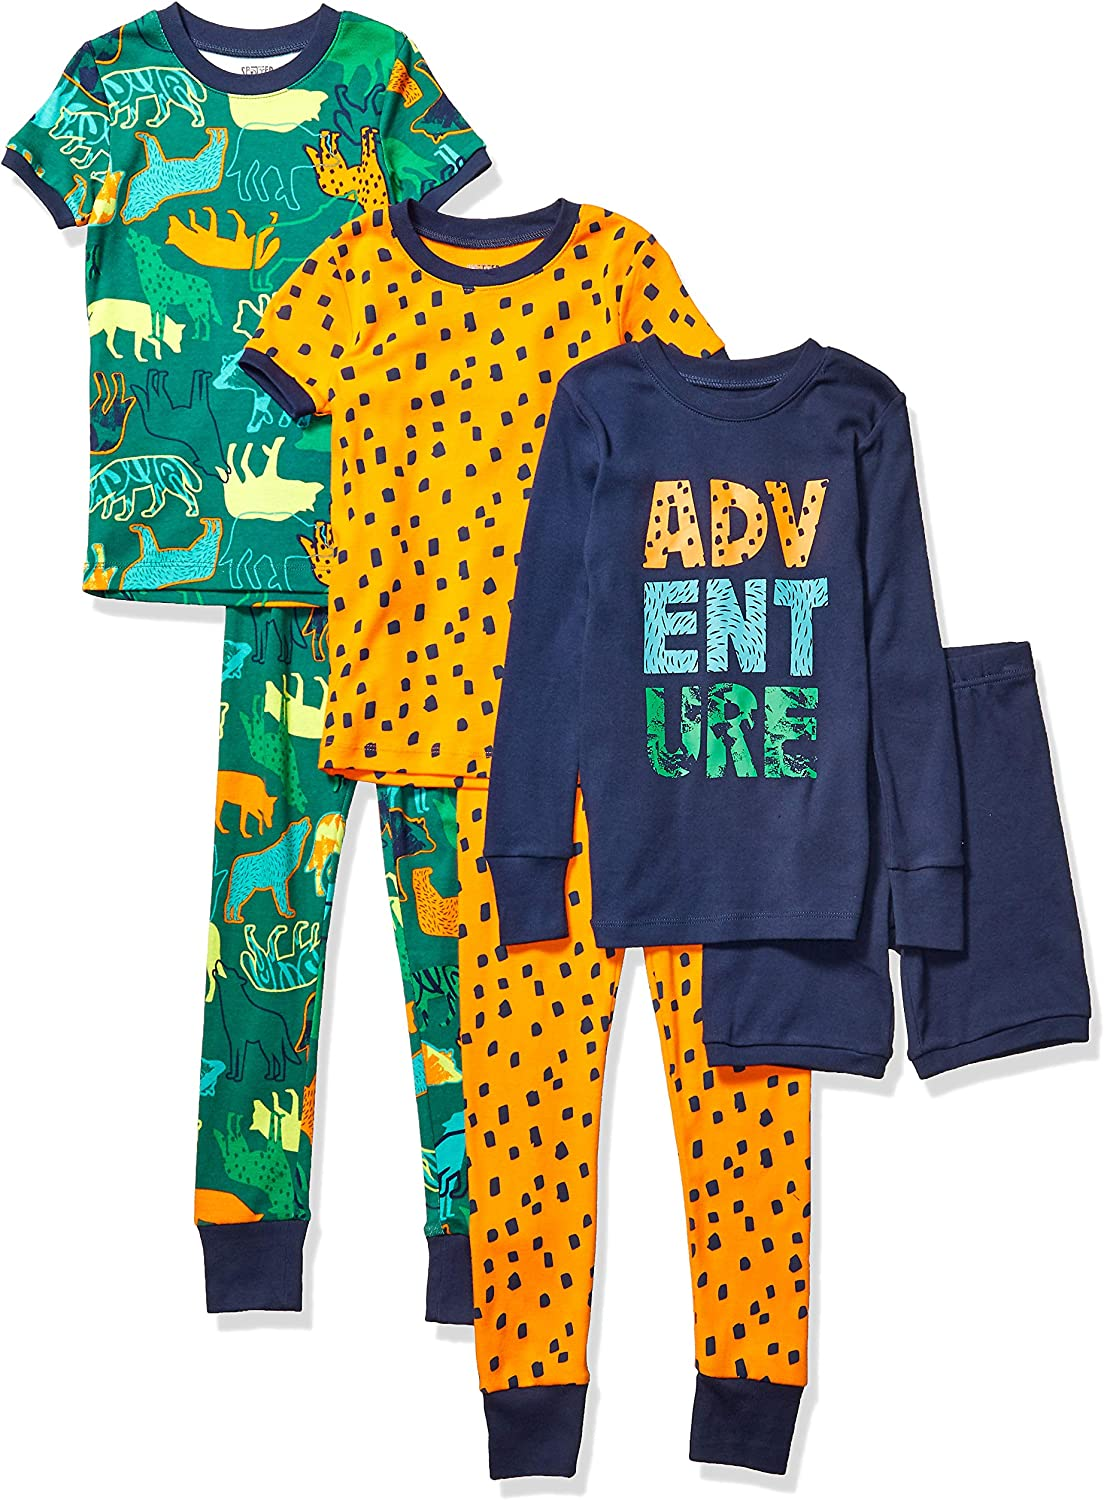 Marchio Amazon - Spotted Zebra 6-Piece Snug-Fit Cotton Pajama Set Unisex-Bimbi 0-24